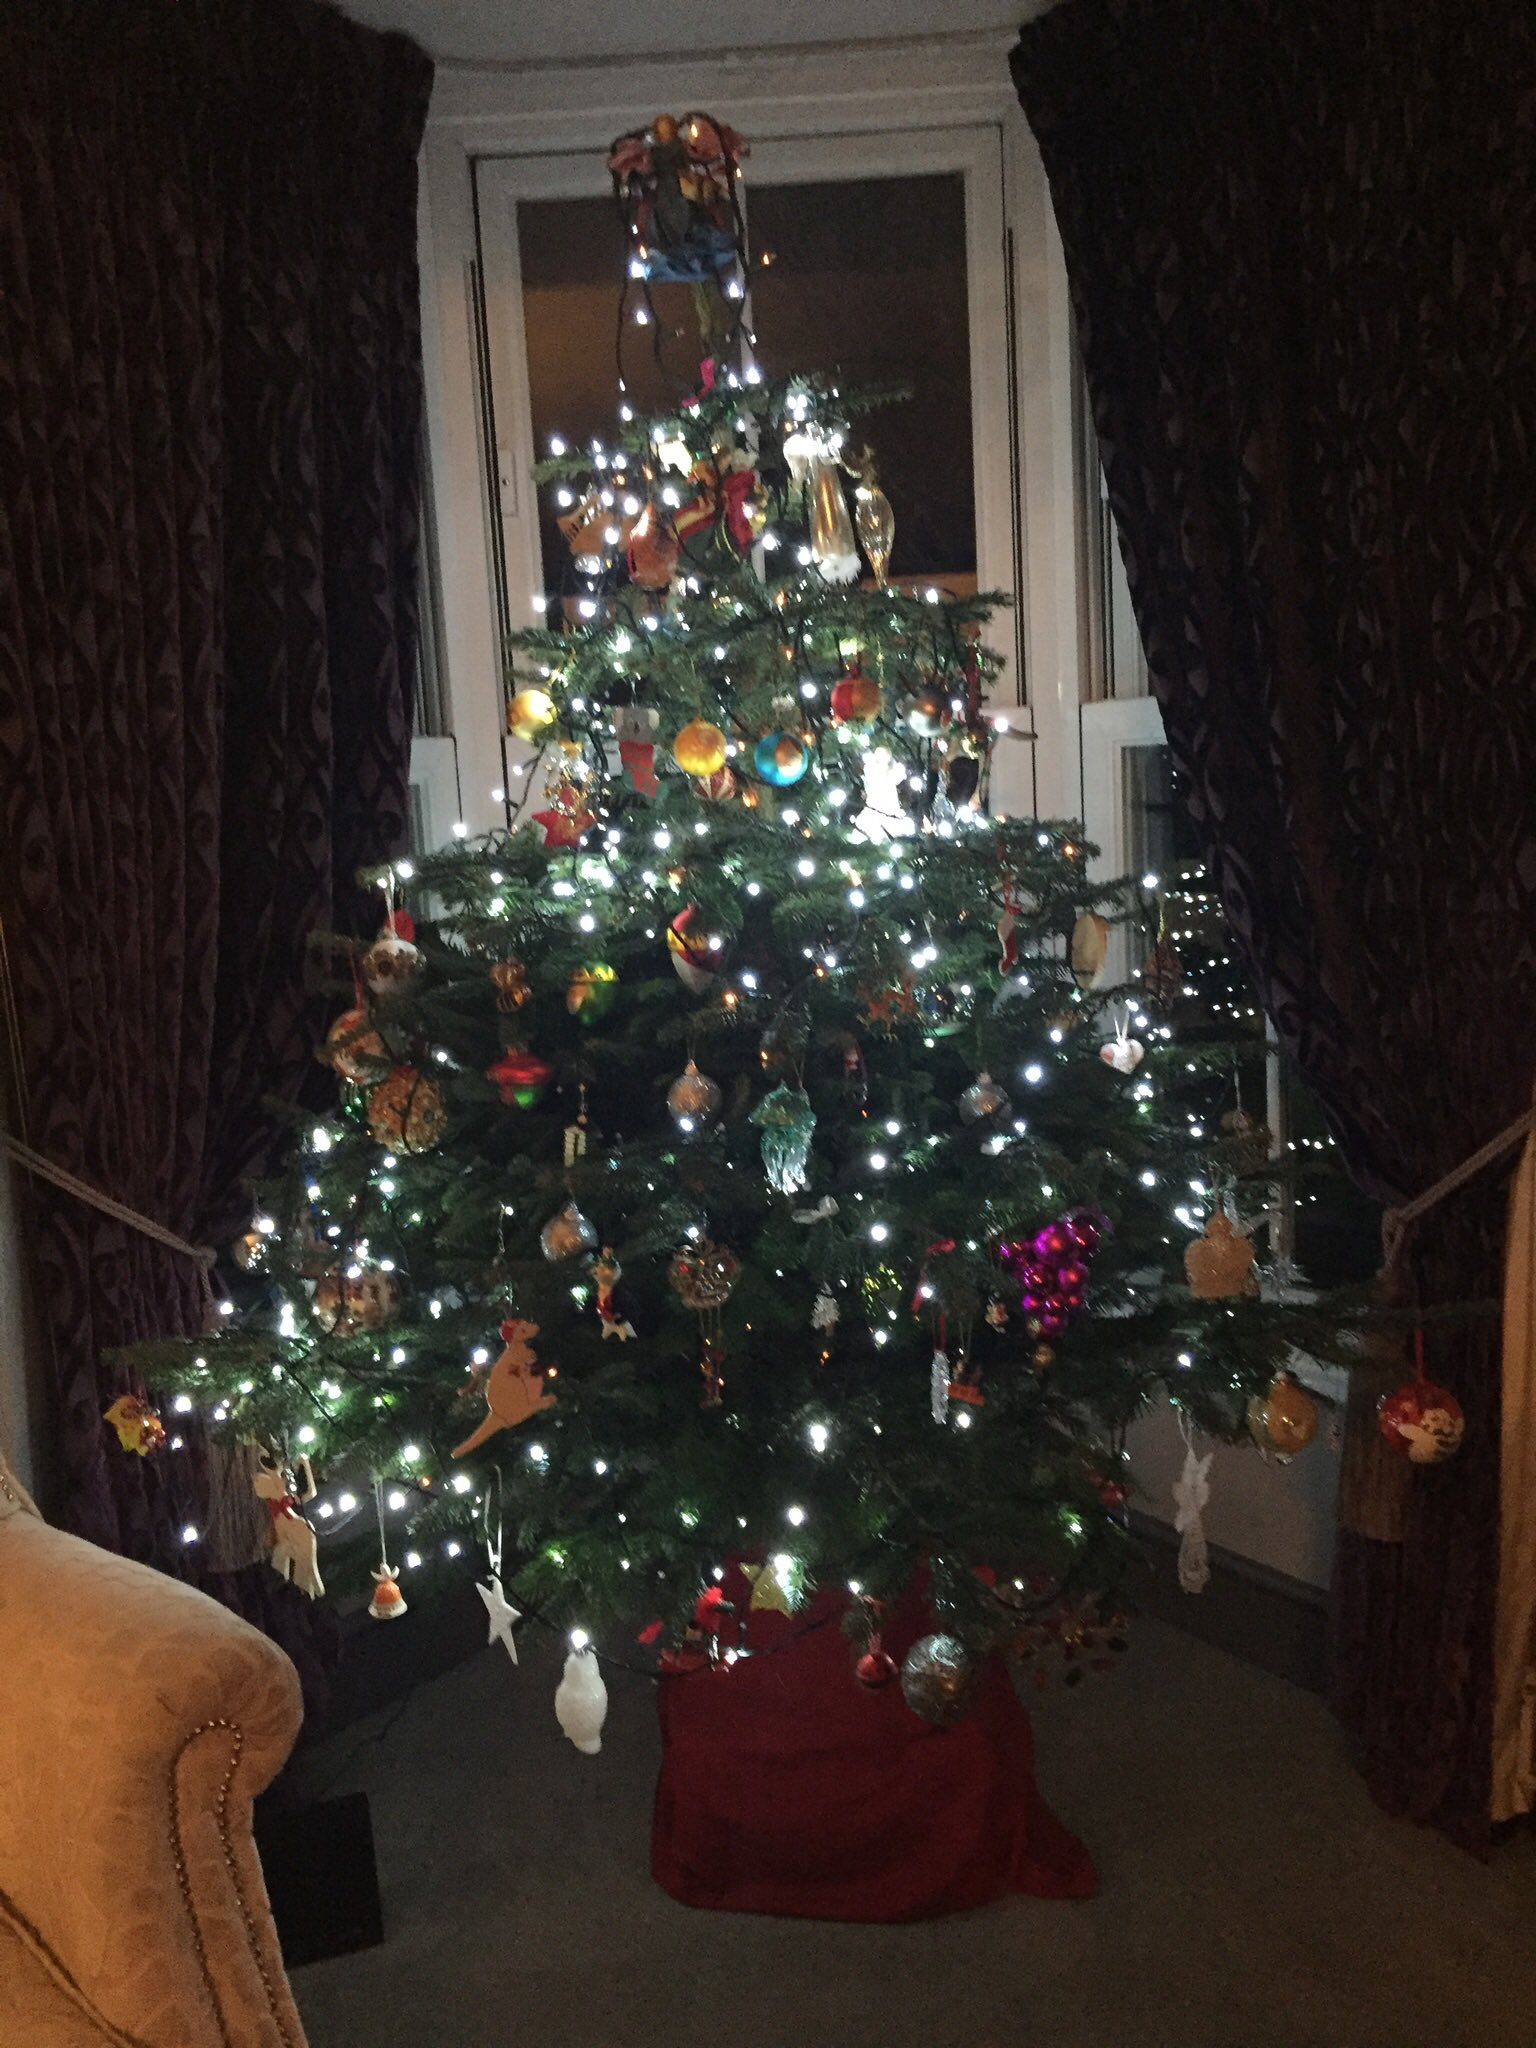 RT @LynneKelly6: @KirstieMAllsopp tree is up. Now I have earned a glass of Wicked wolf gin. Cheers. https://t.co/2QKm51CFLu